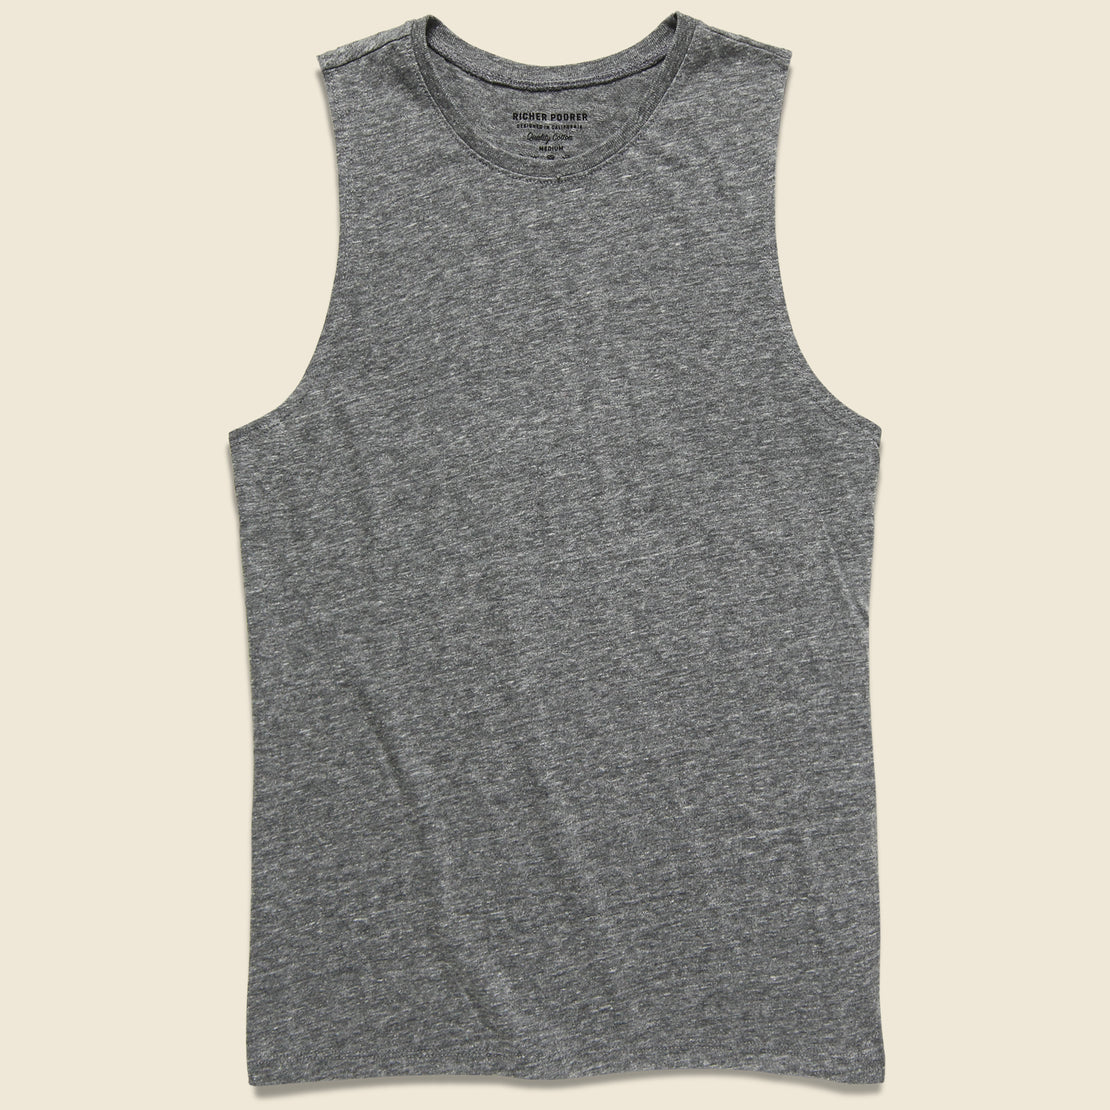 Richer Poorer Muscle Tank - Grey